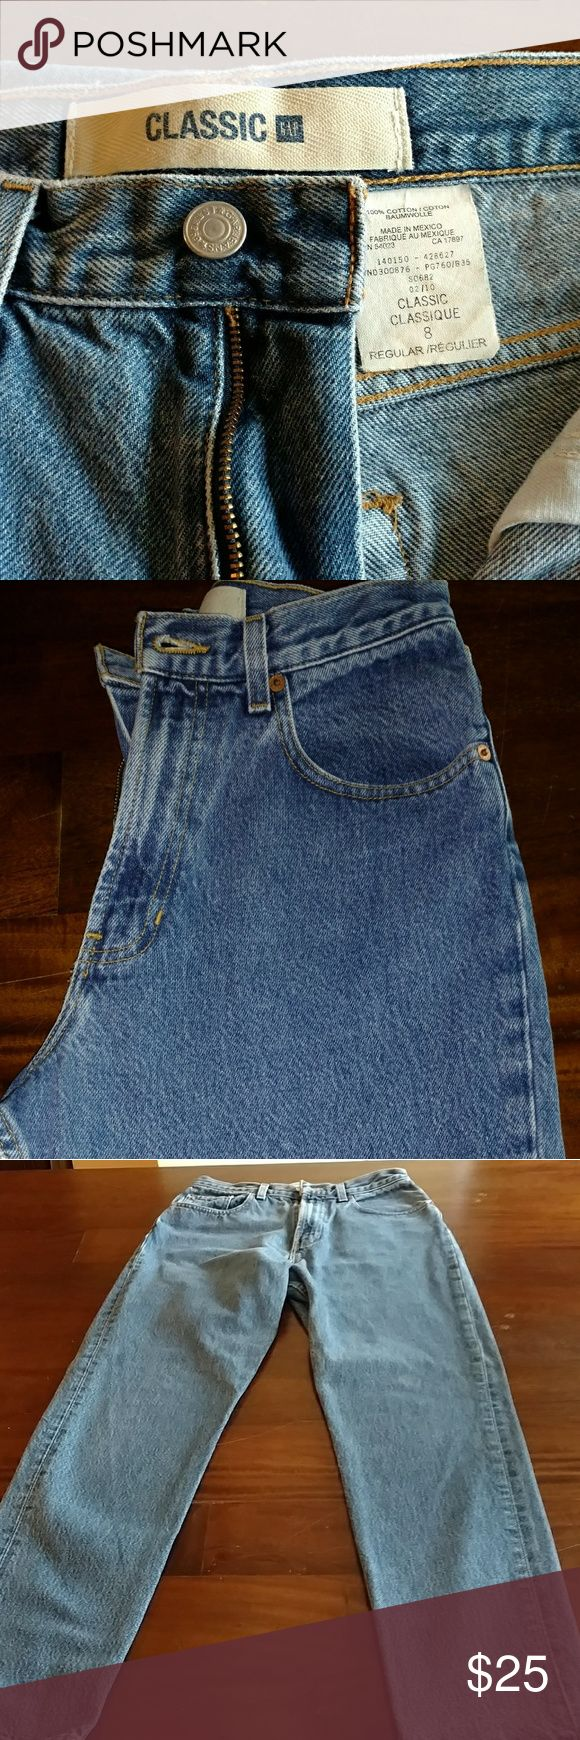 "Classic Gap ""Mom"" jeans 100% cotton denim, difficult to find in women's jeans today.  Rise of 12 inches and inseam of 31 inches. GAP Jeans Straight Leg"